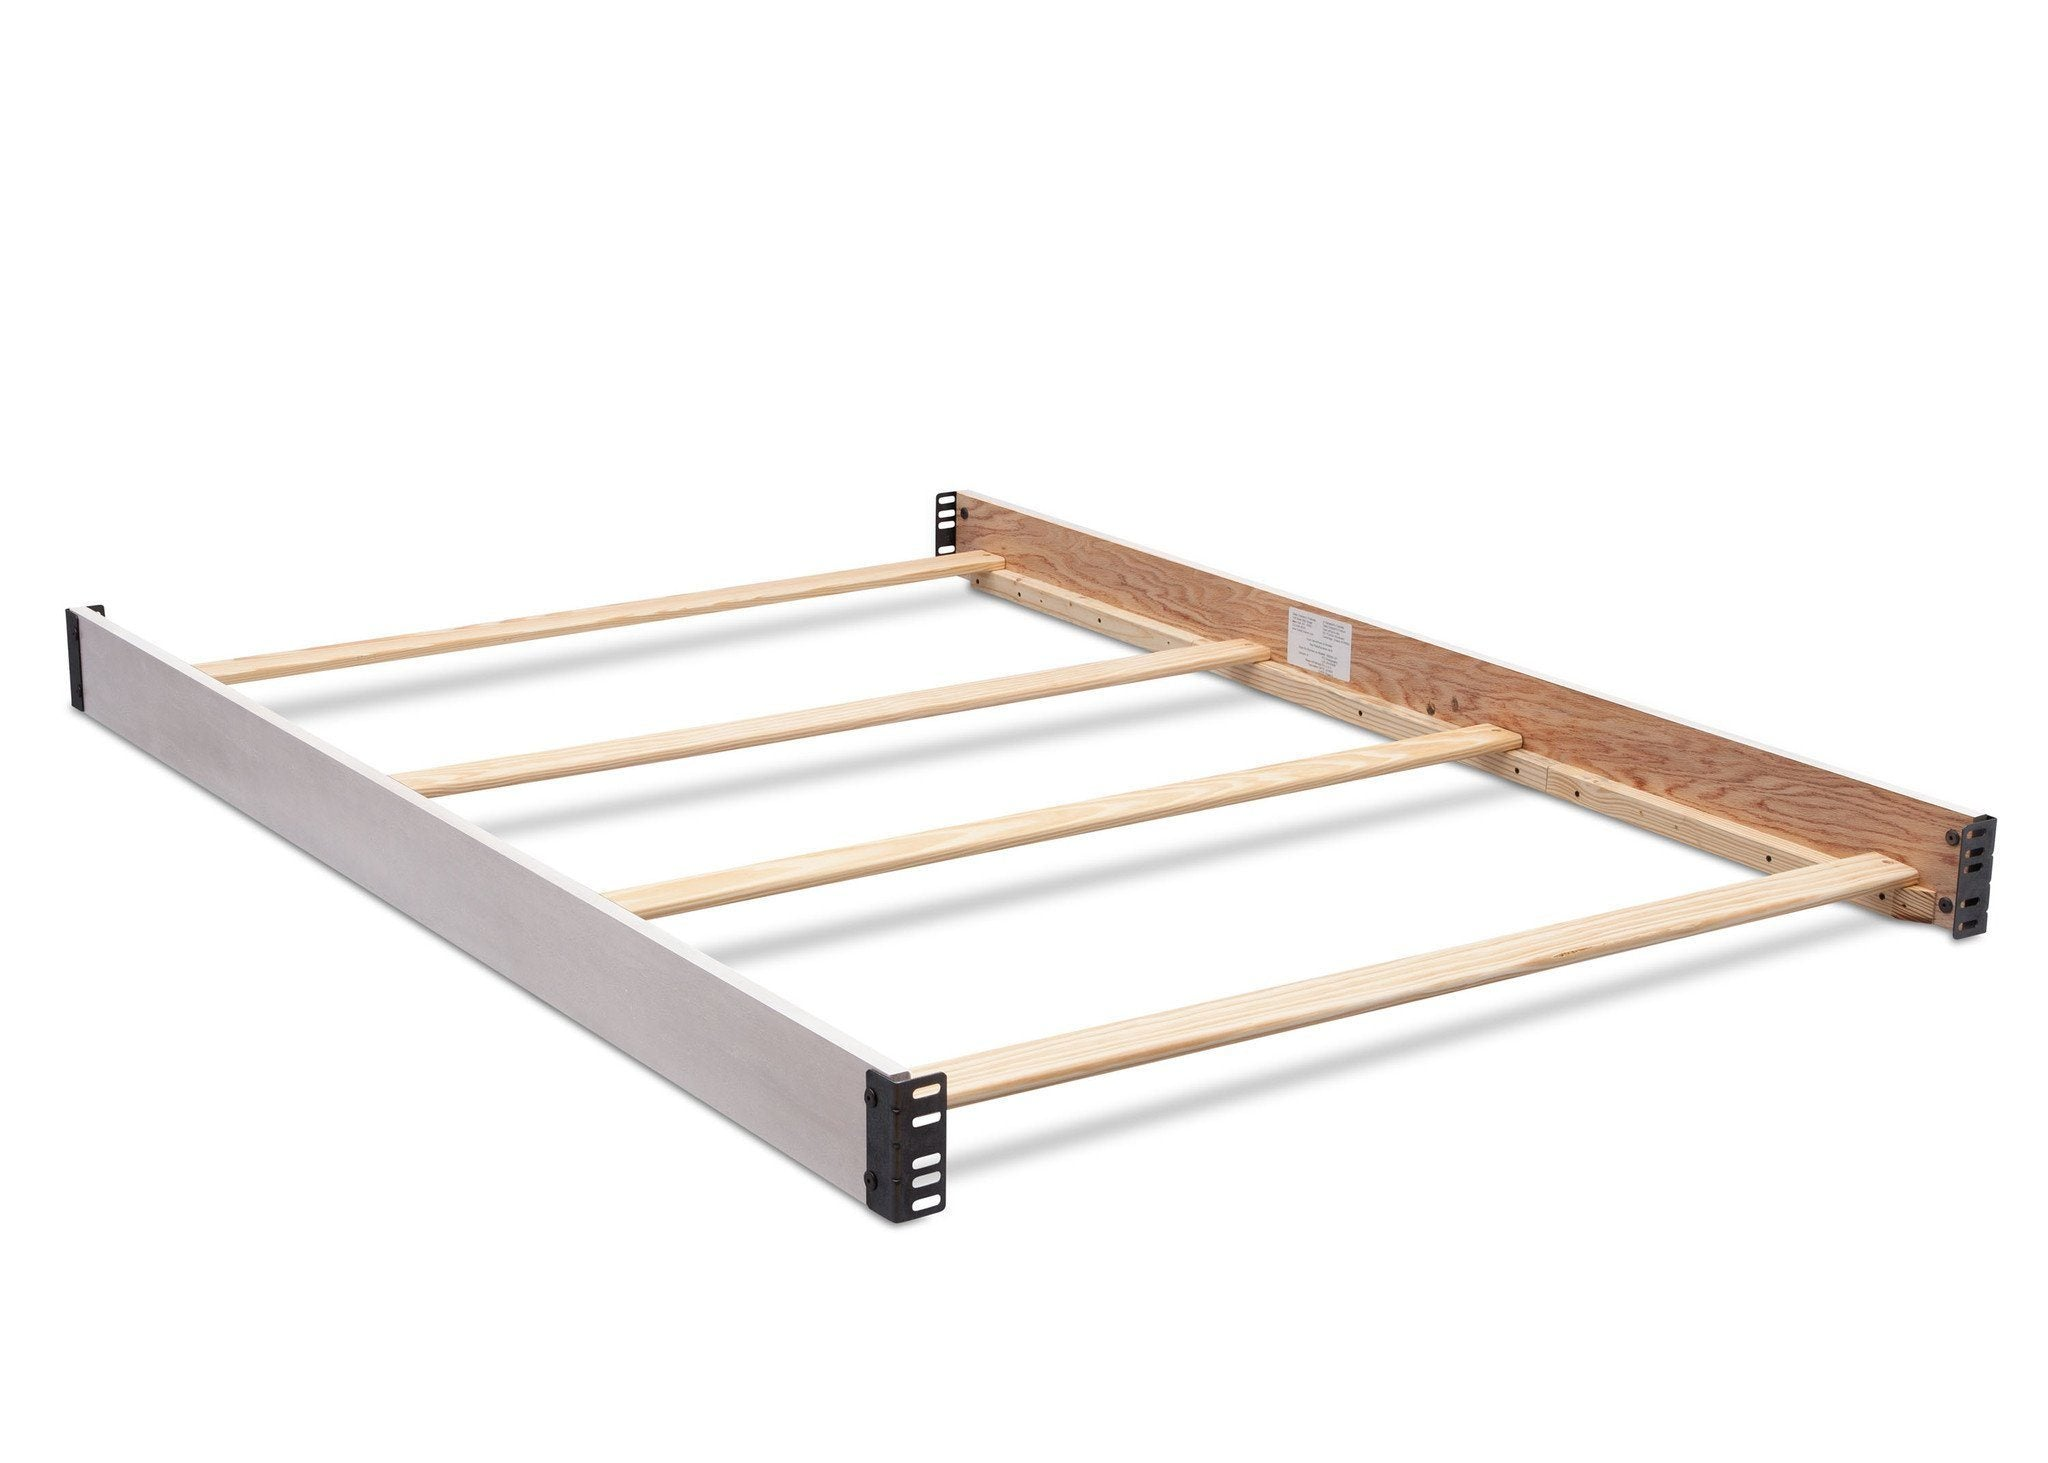 Simmons Kids Antique White (122) Full Size Wood Bed Rails (180050) b1b for Bedford 4-in-1 Convertible Crib